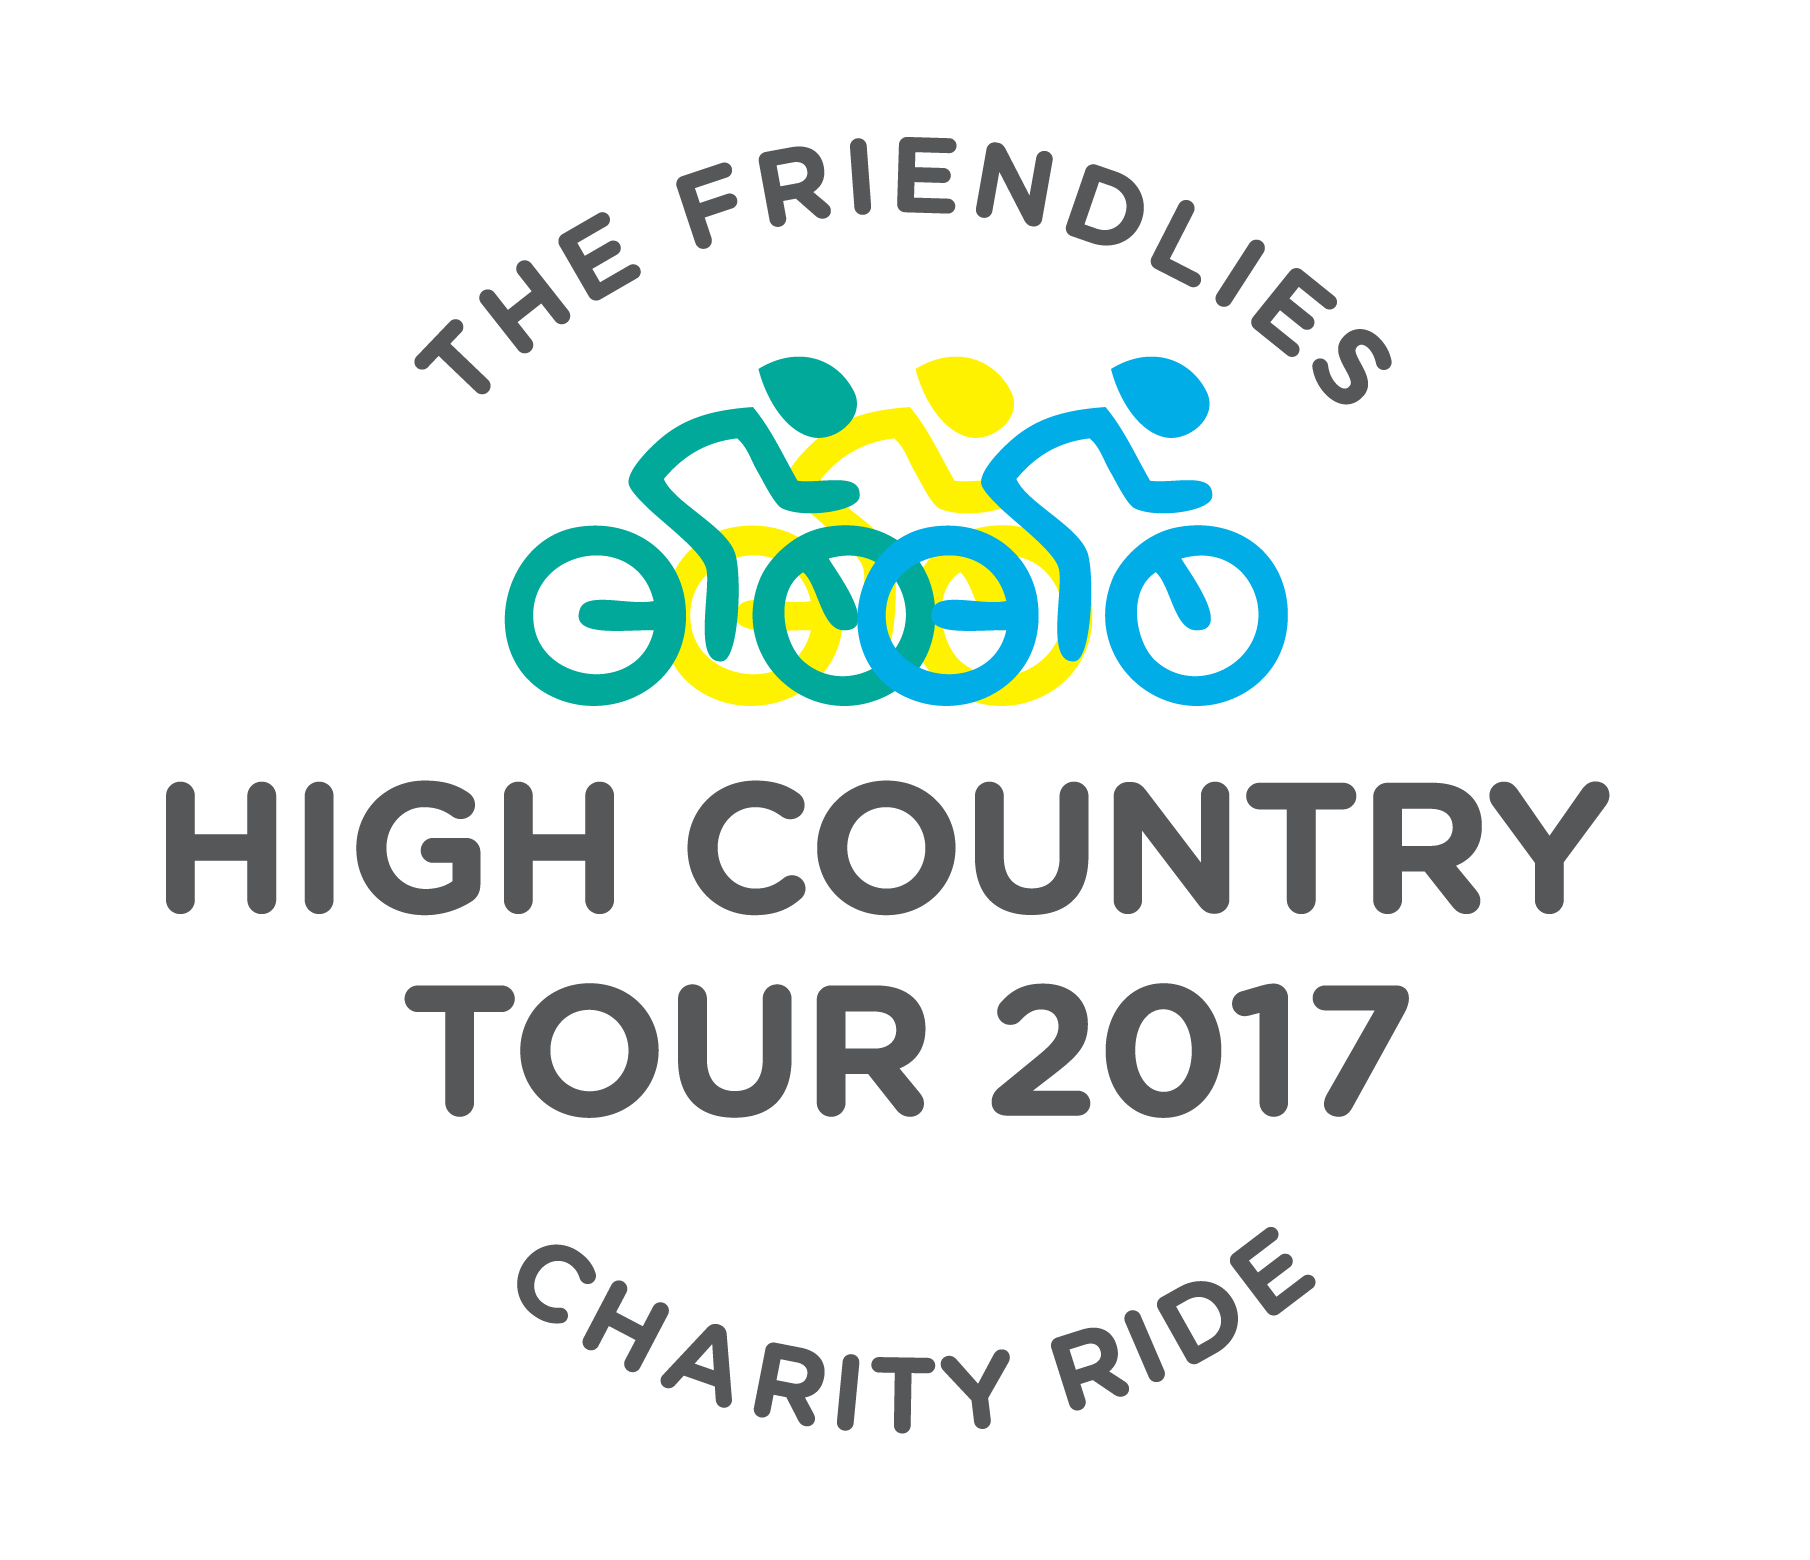 The Friendlies High Country Tour 2017